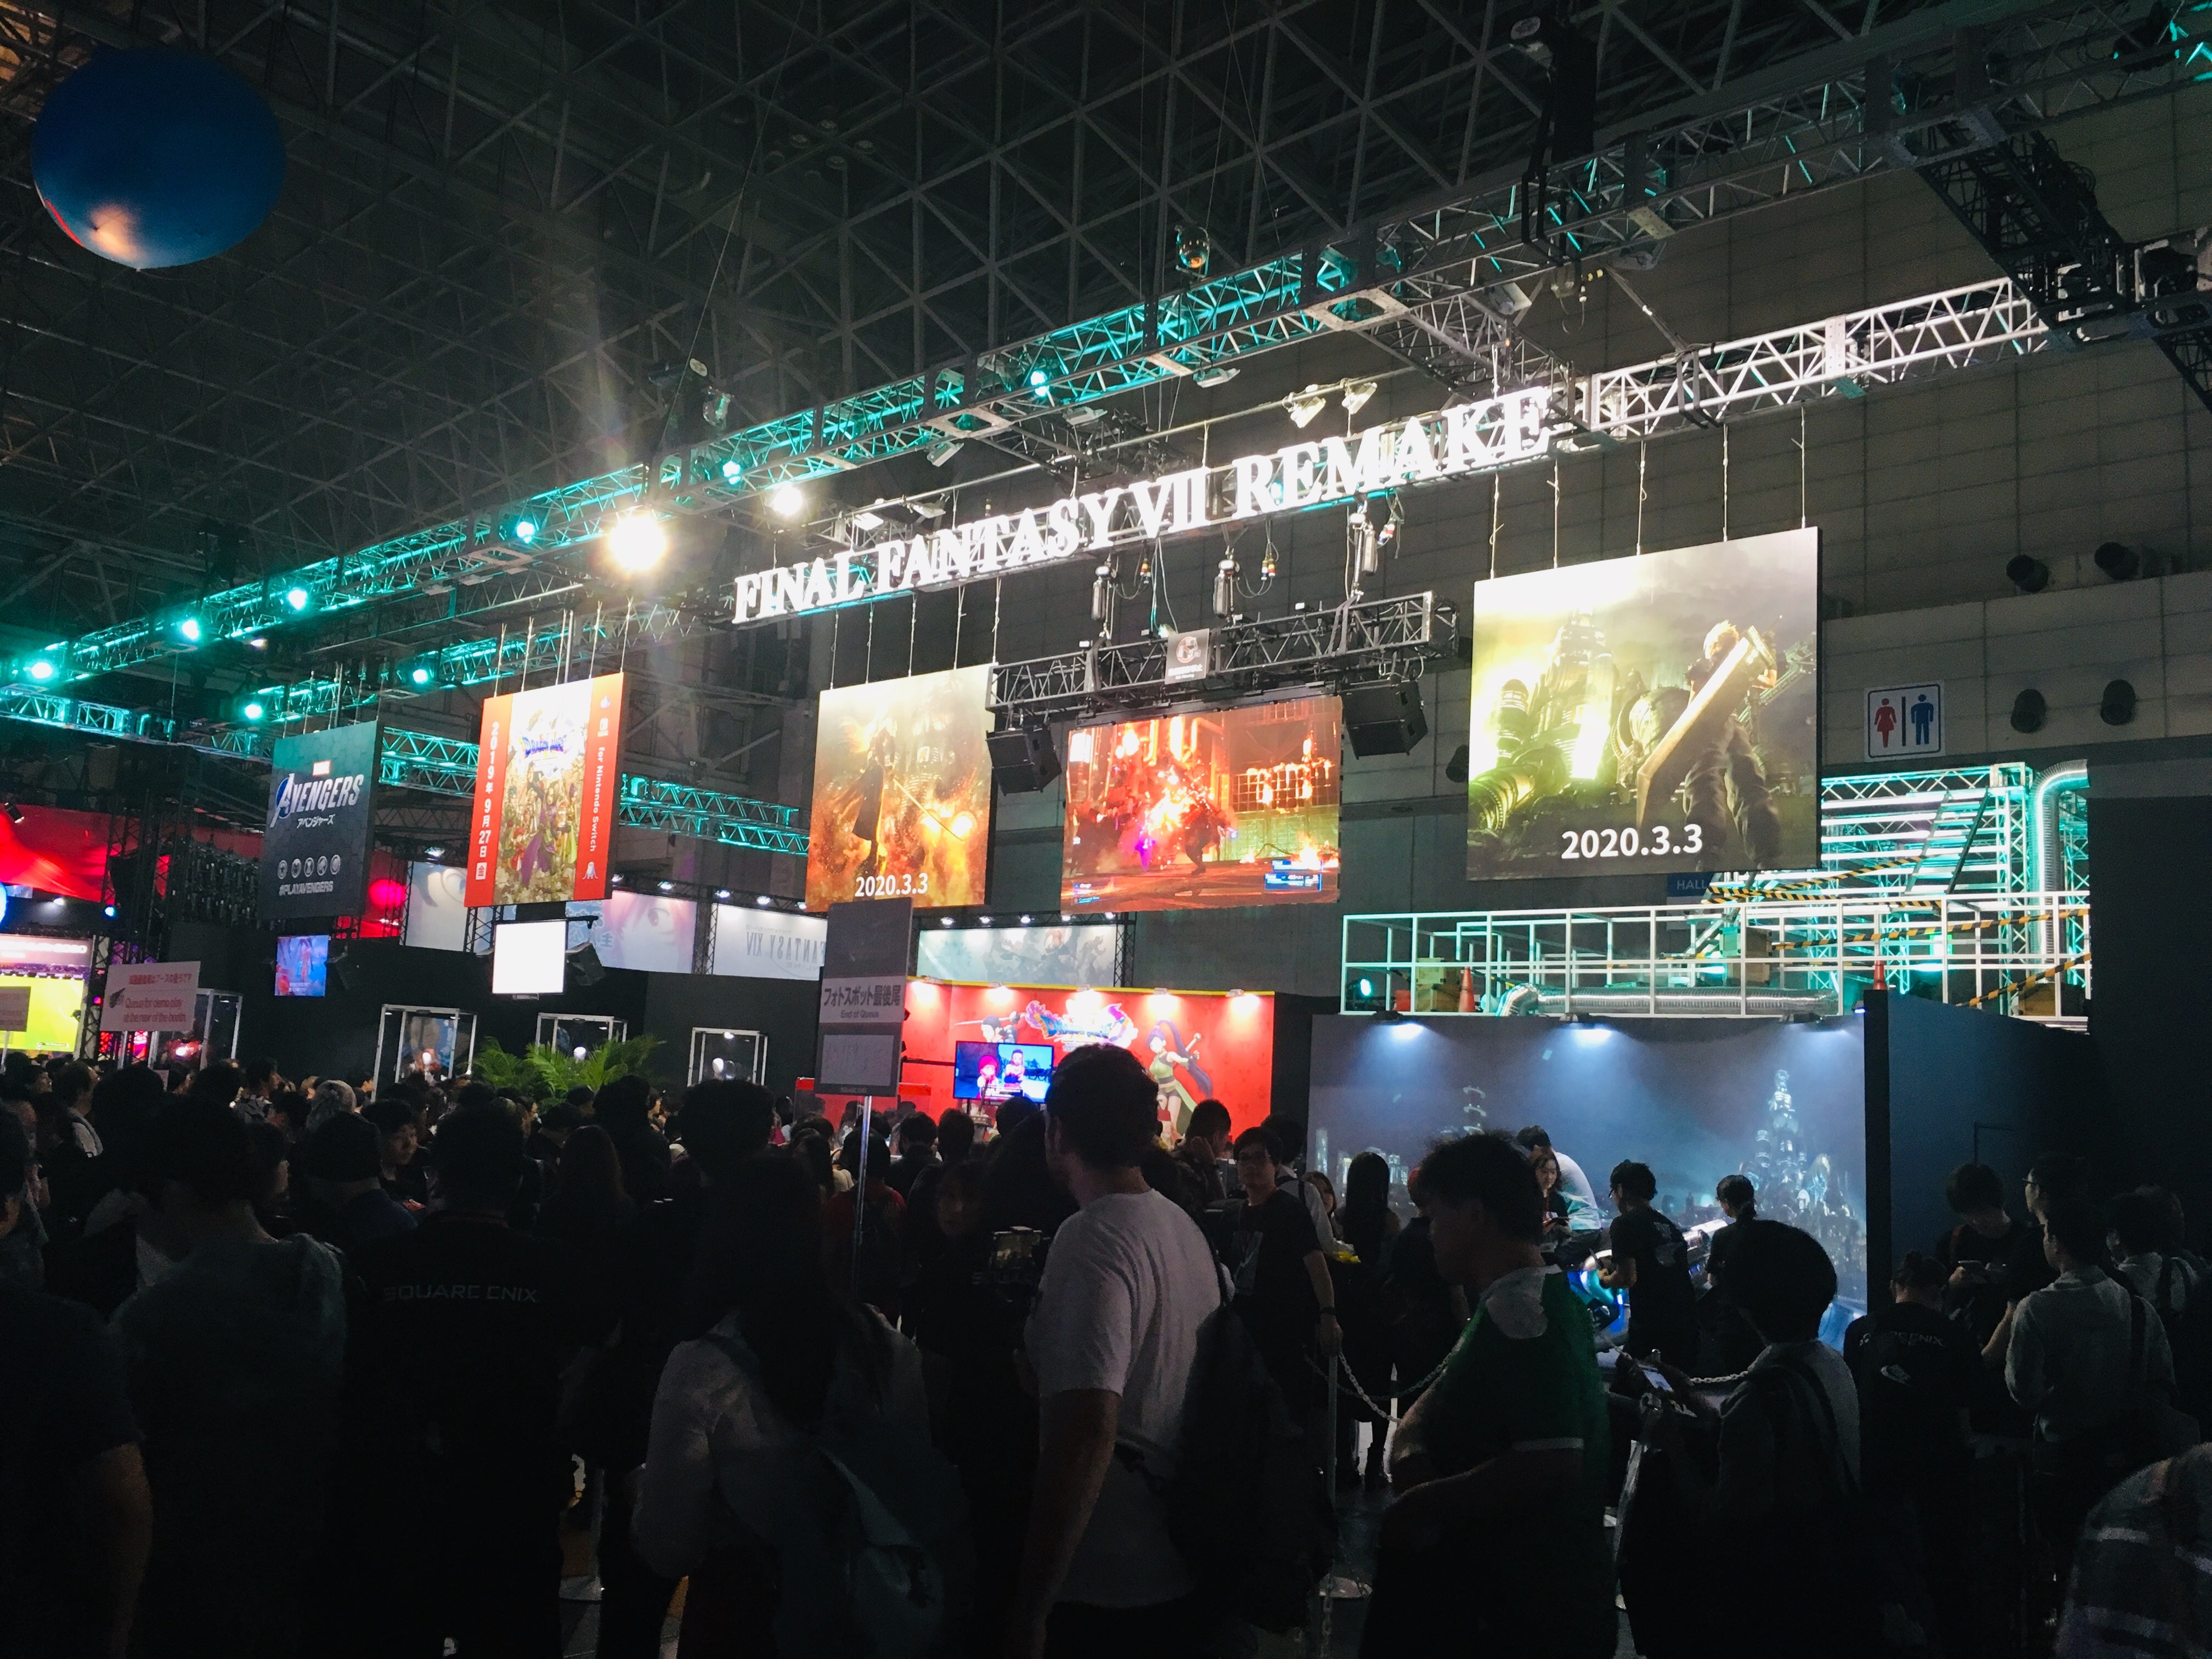 Final Fantasy 7 Remake Seems Popular At The Tokyo Game Show